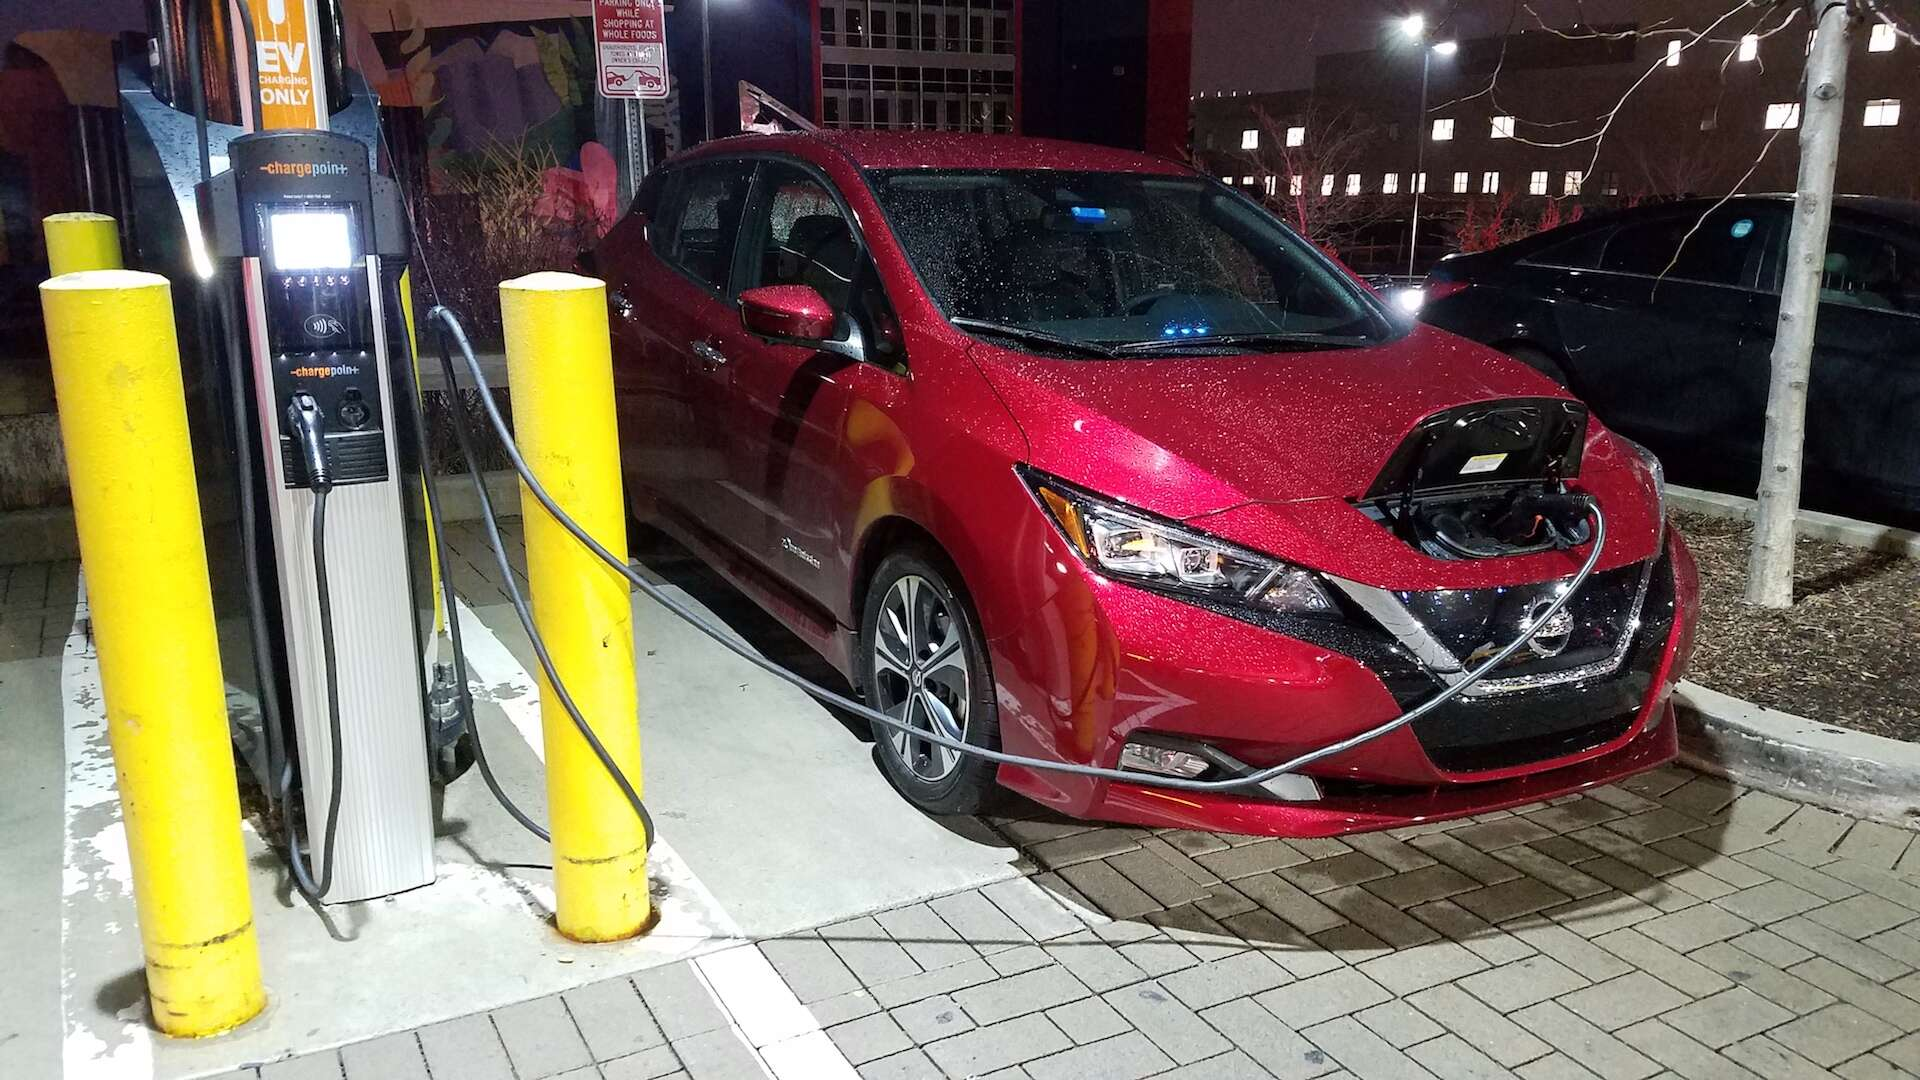 Nissan Leaf Review An OtherwiseExemplary Electric Car Falls - Car show board template